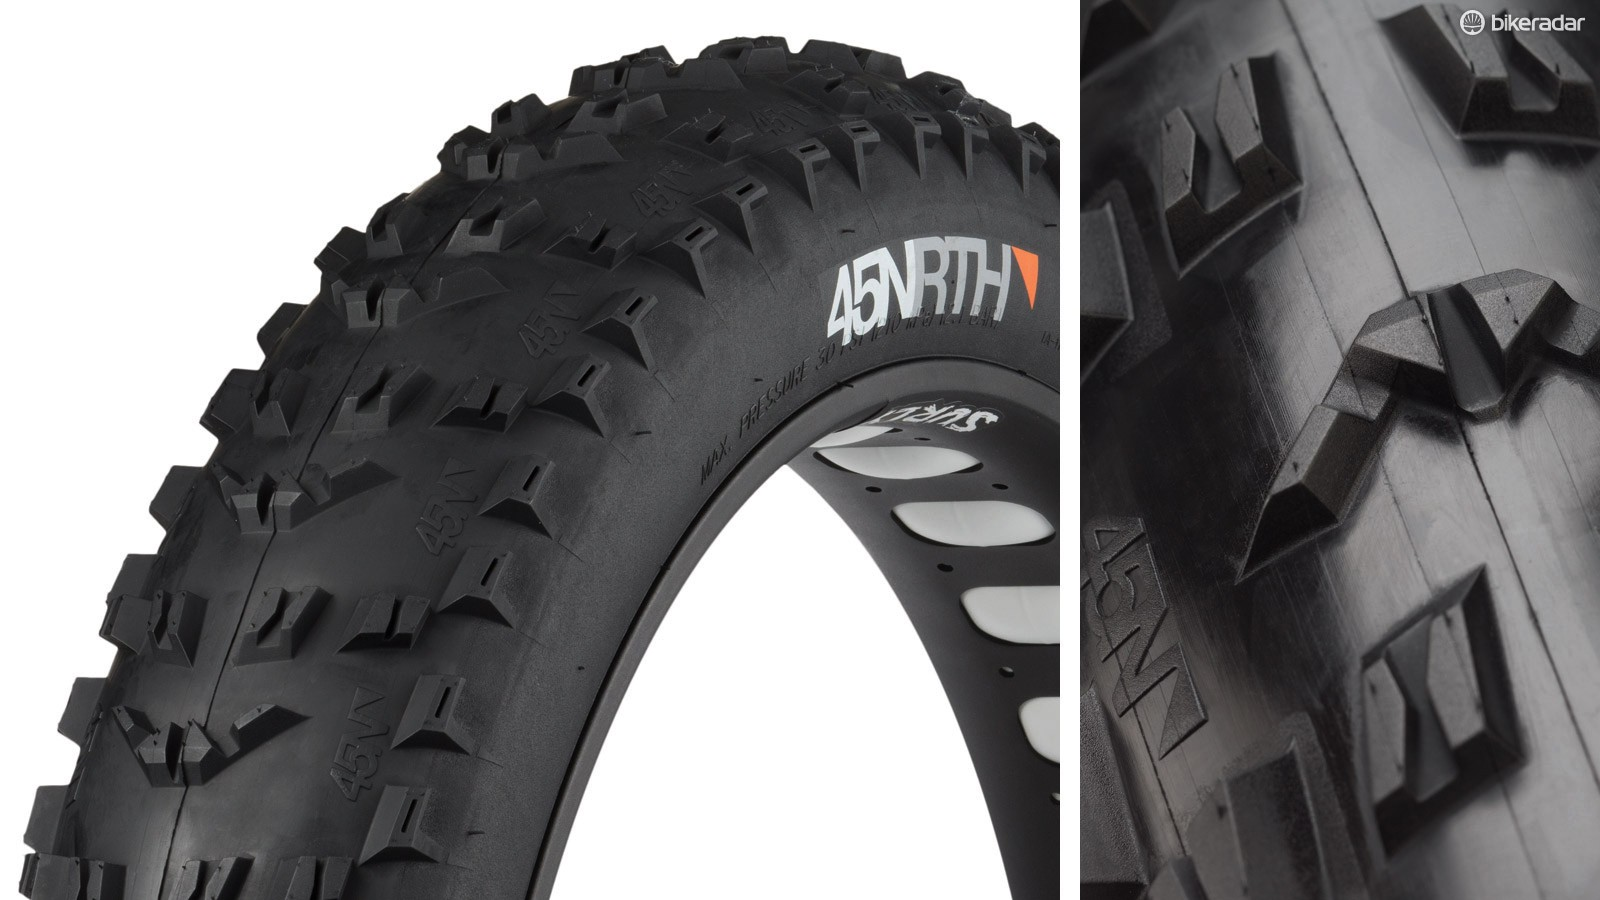 45NRTH's new front-specific Flowbeist fat bike tire boasts ramped center knobs and an aggressive shoulder block pattern for secure cornering grip